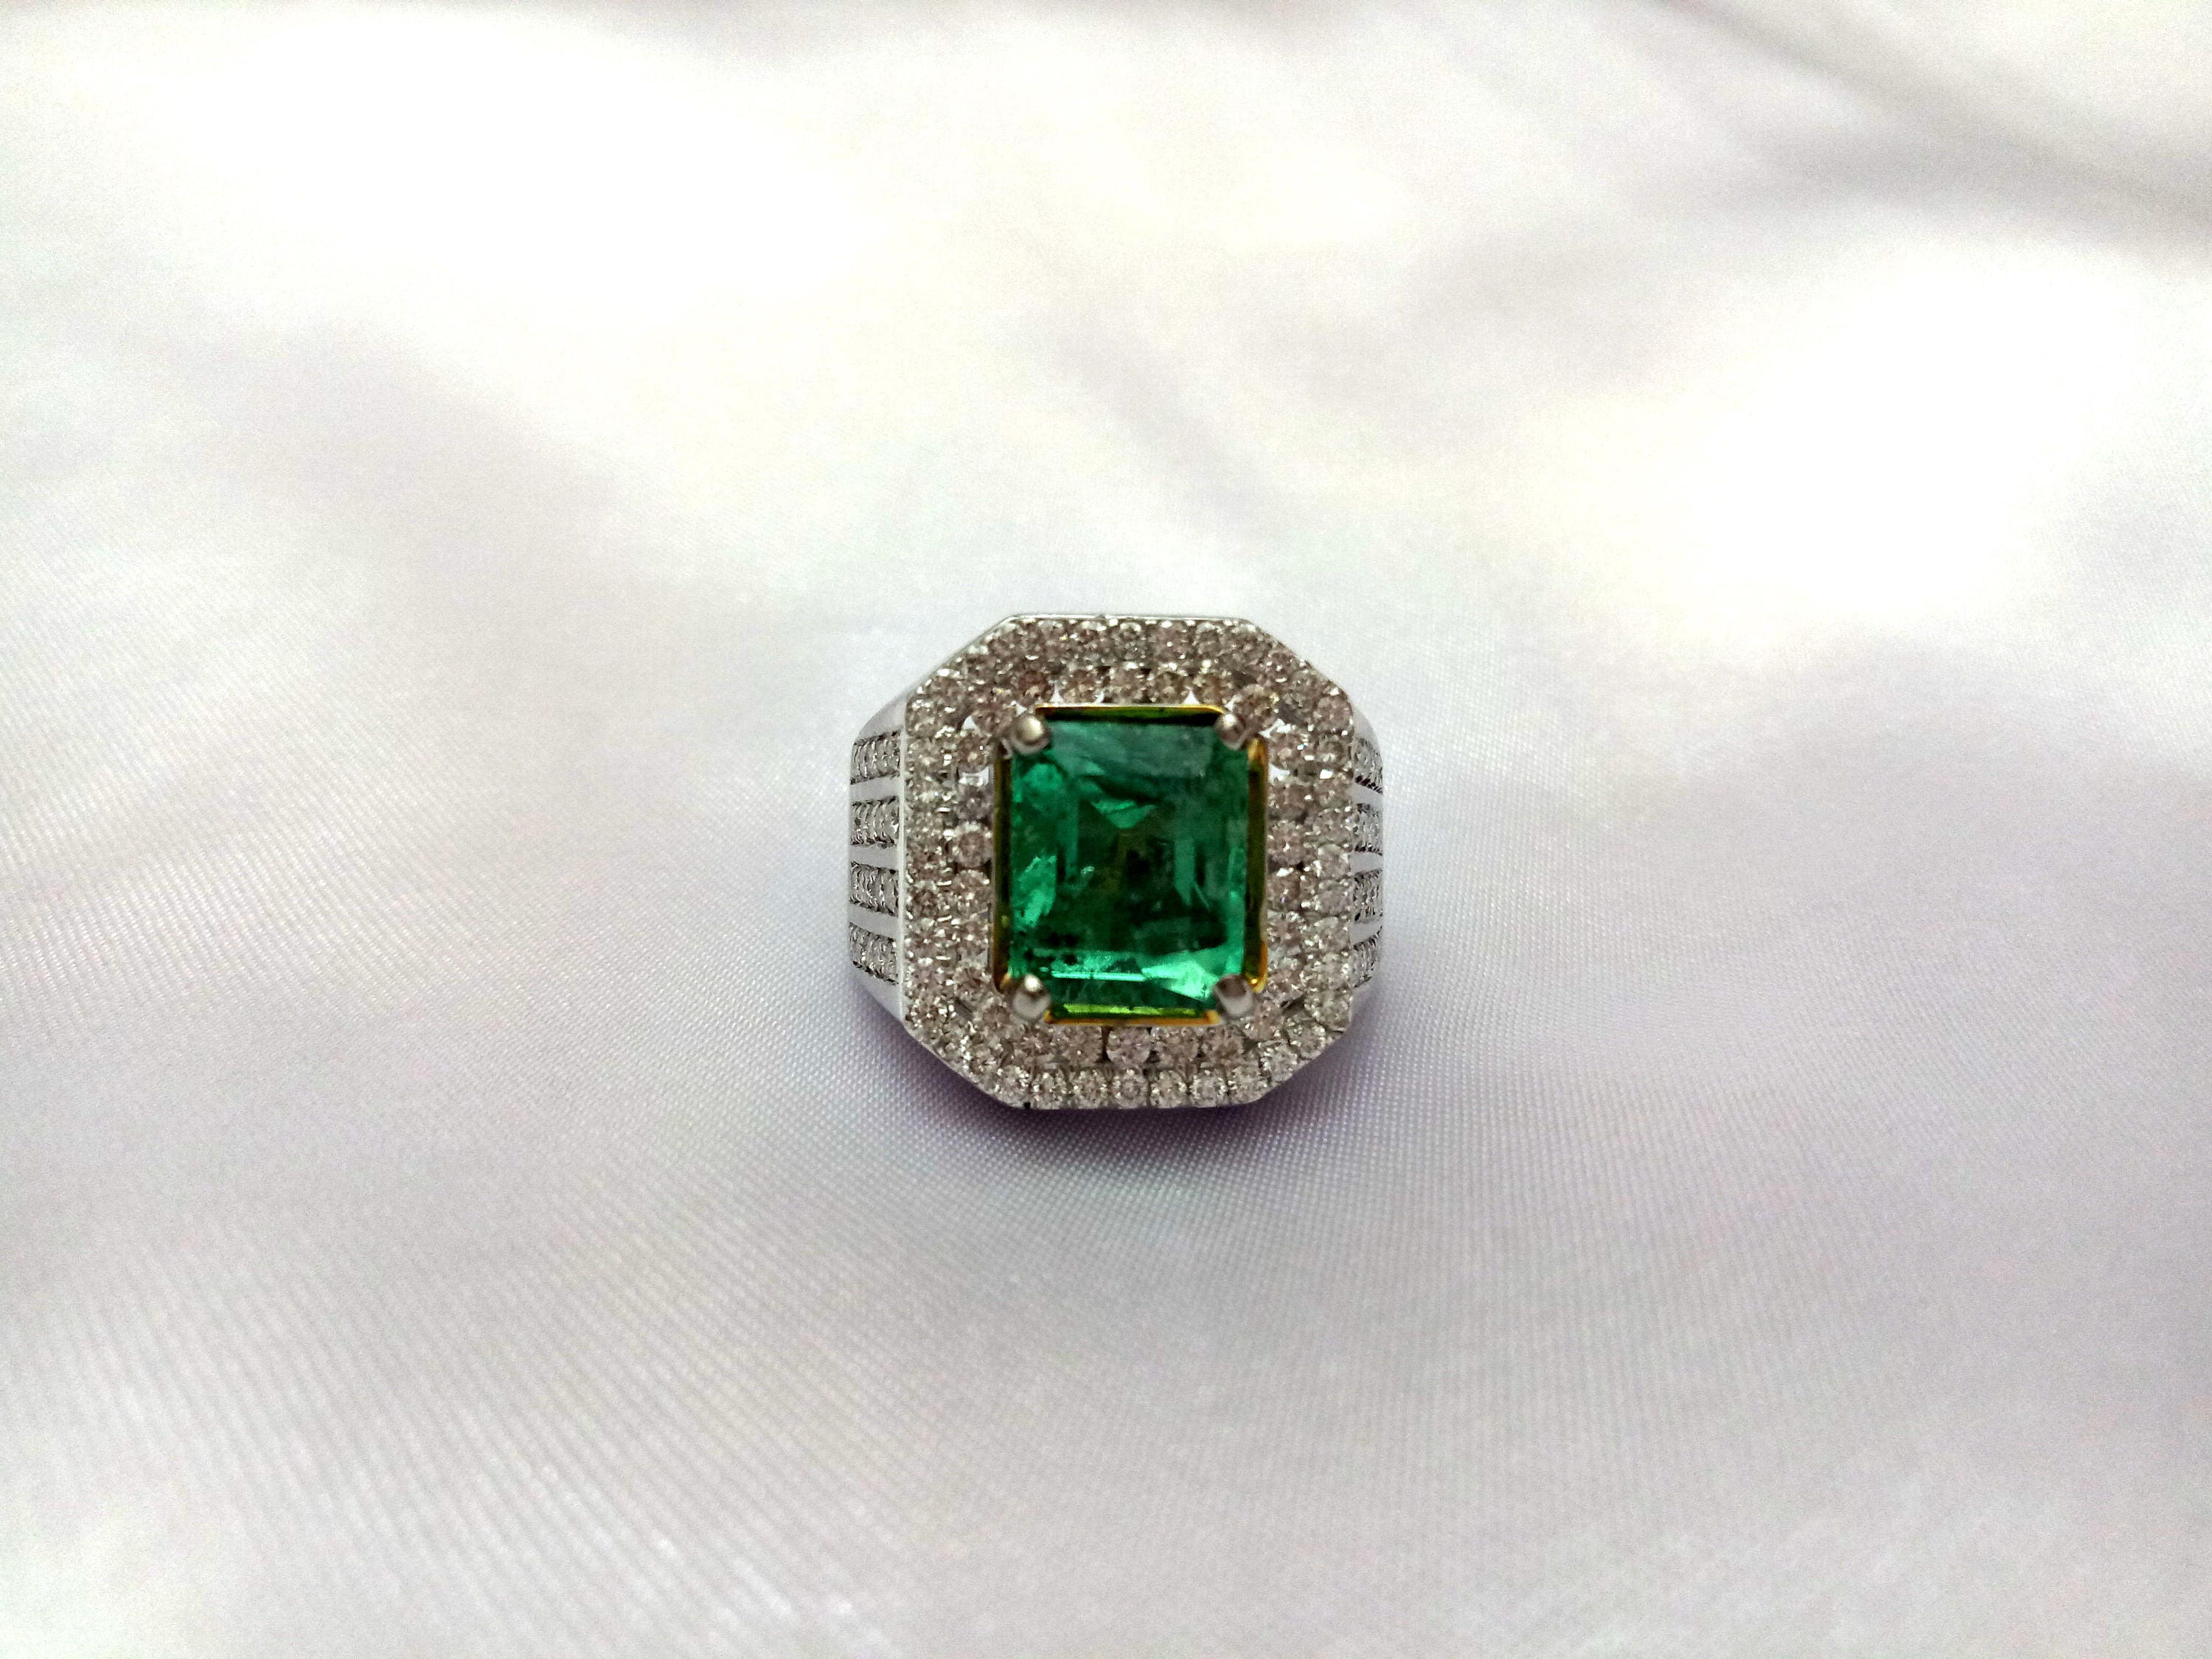 saleplatinum women ideas lab image tags of men amazing menemerald ring emerald full womenfire tag gold for anniversary rings platinum grown size and mens rare ruby